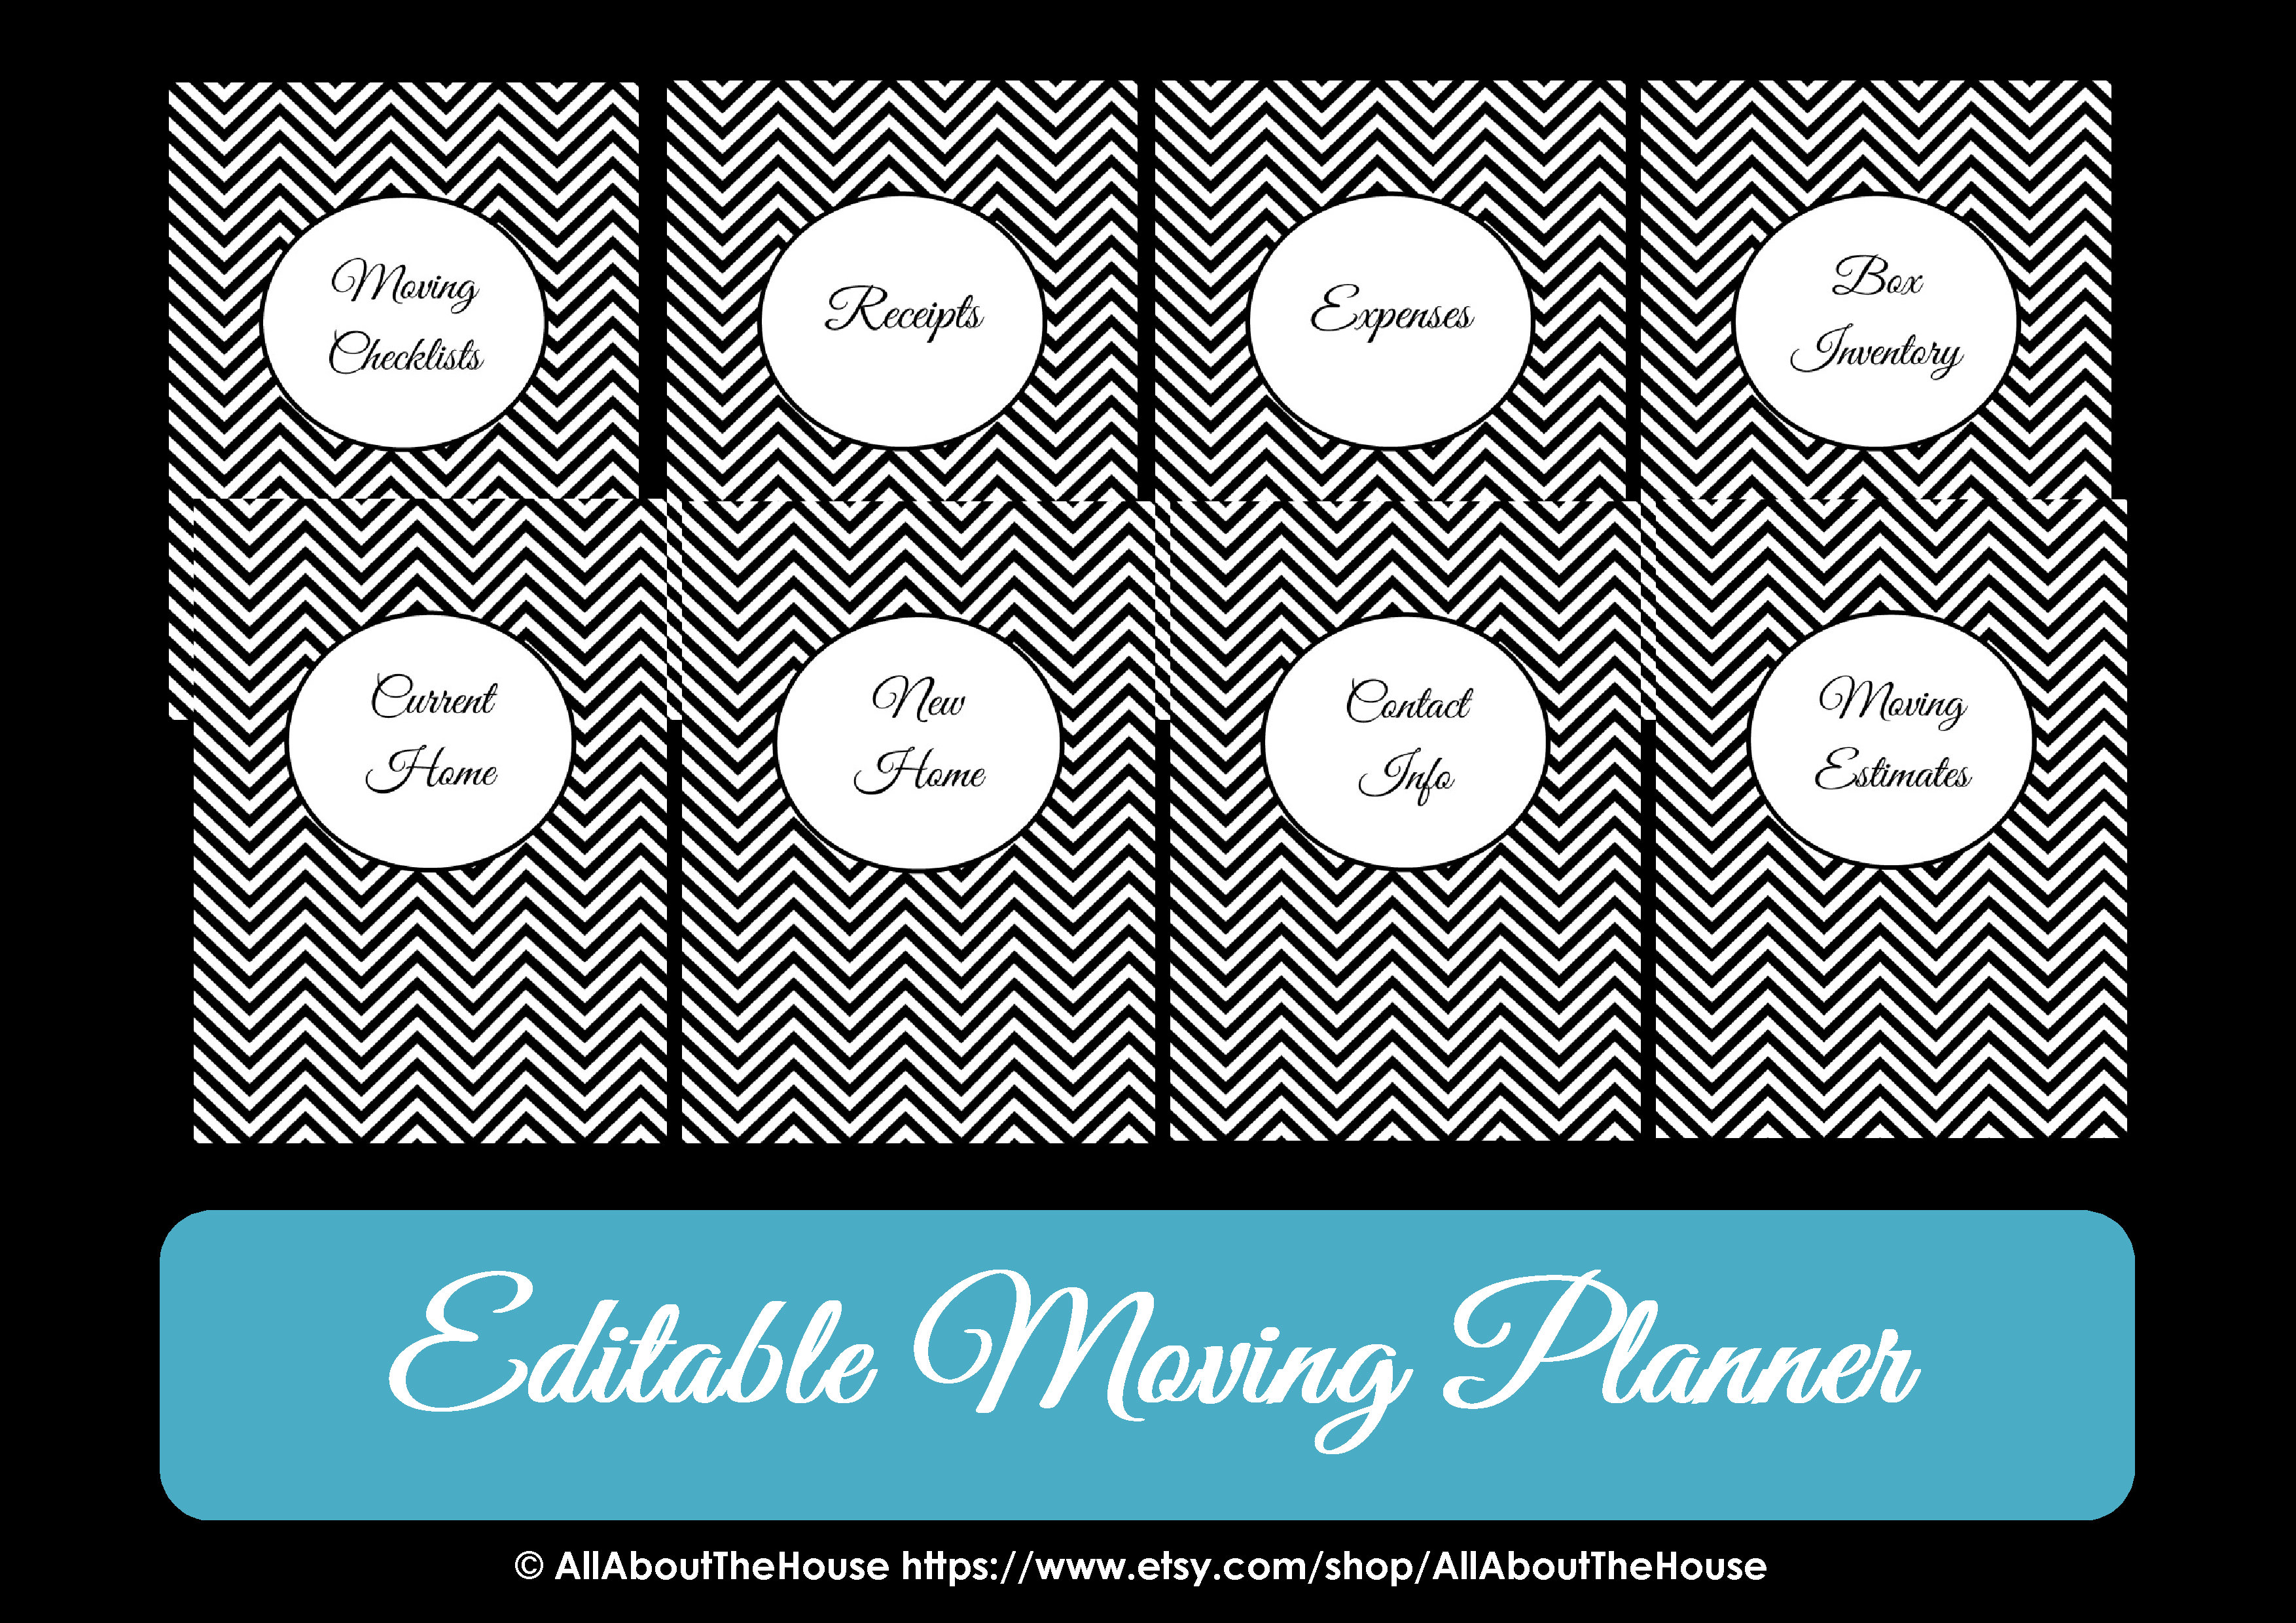 Moving Planner Binder Printable Chevron Organize Checklist